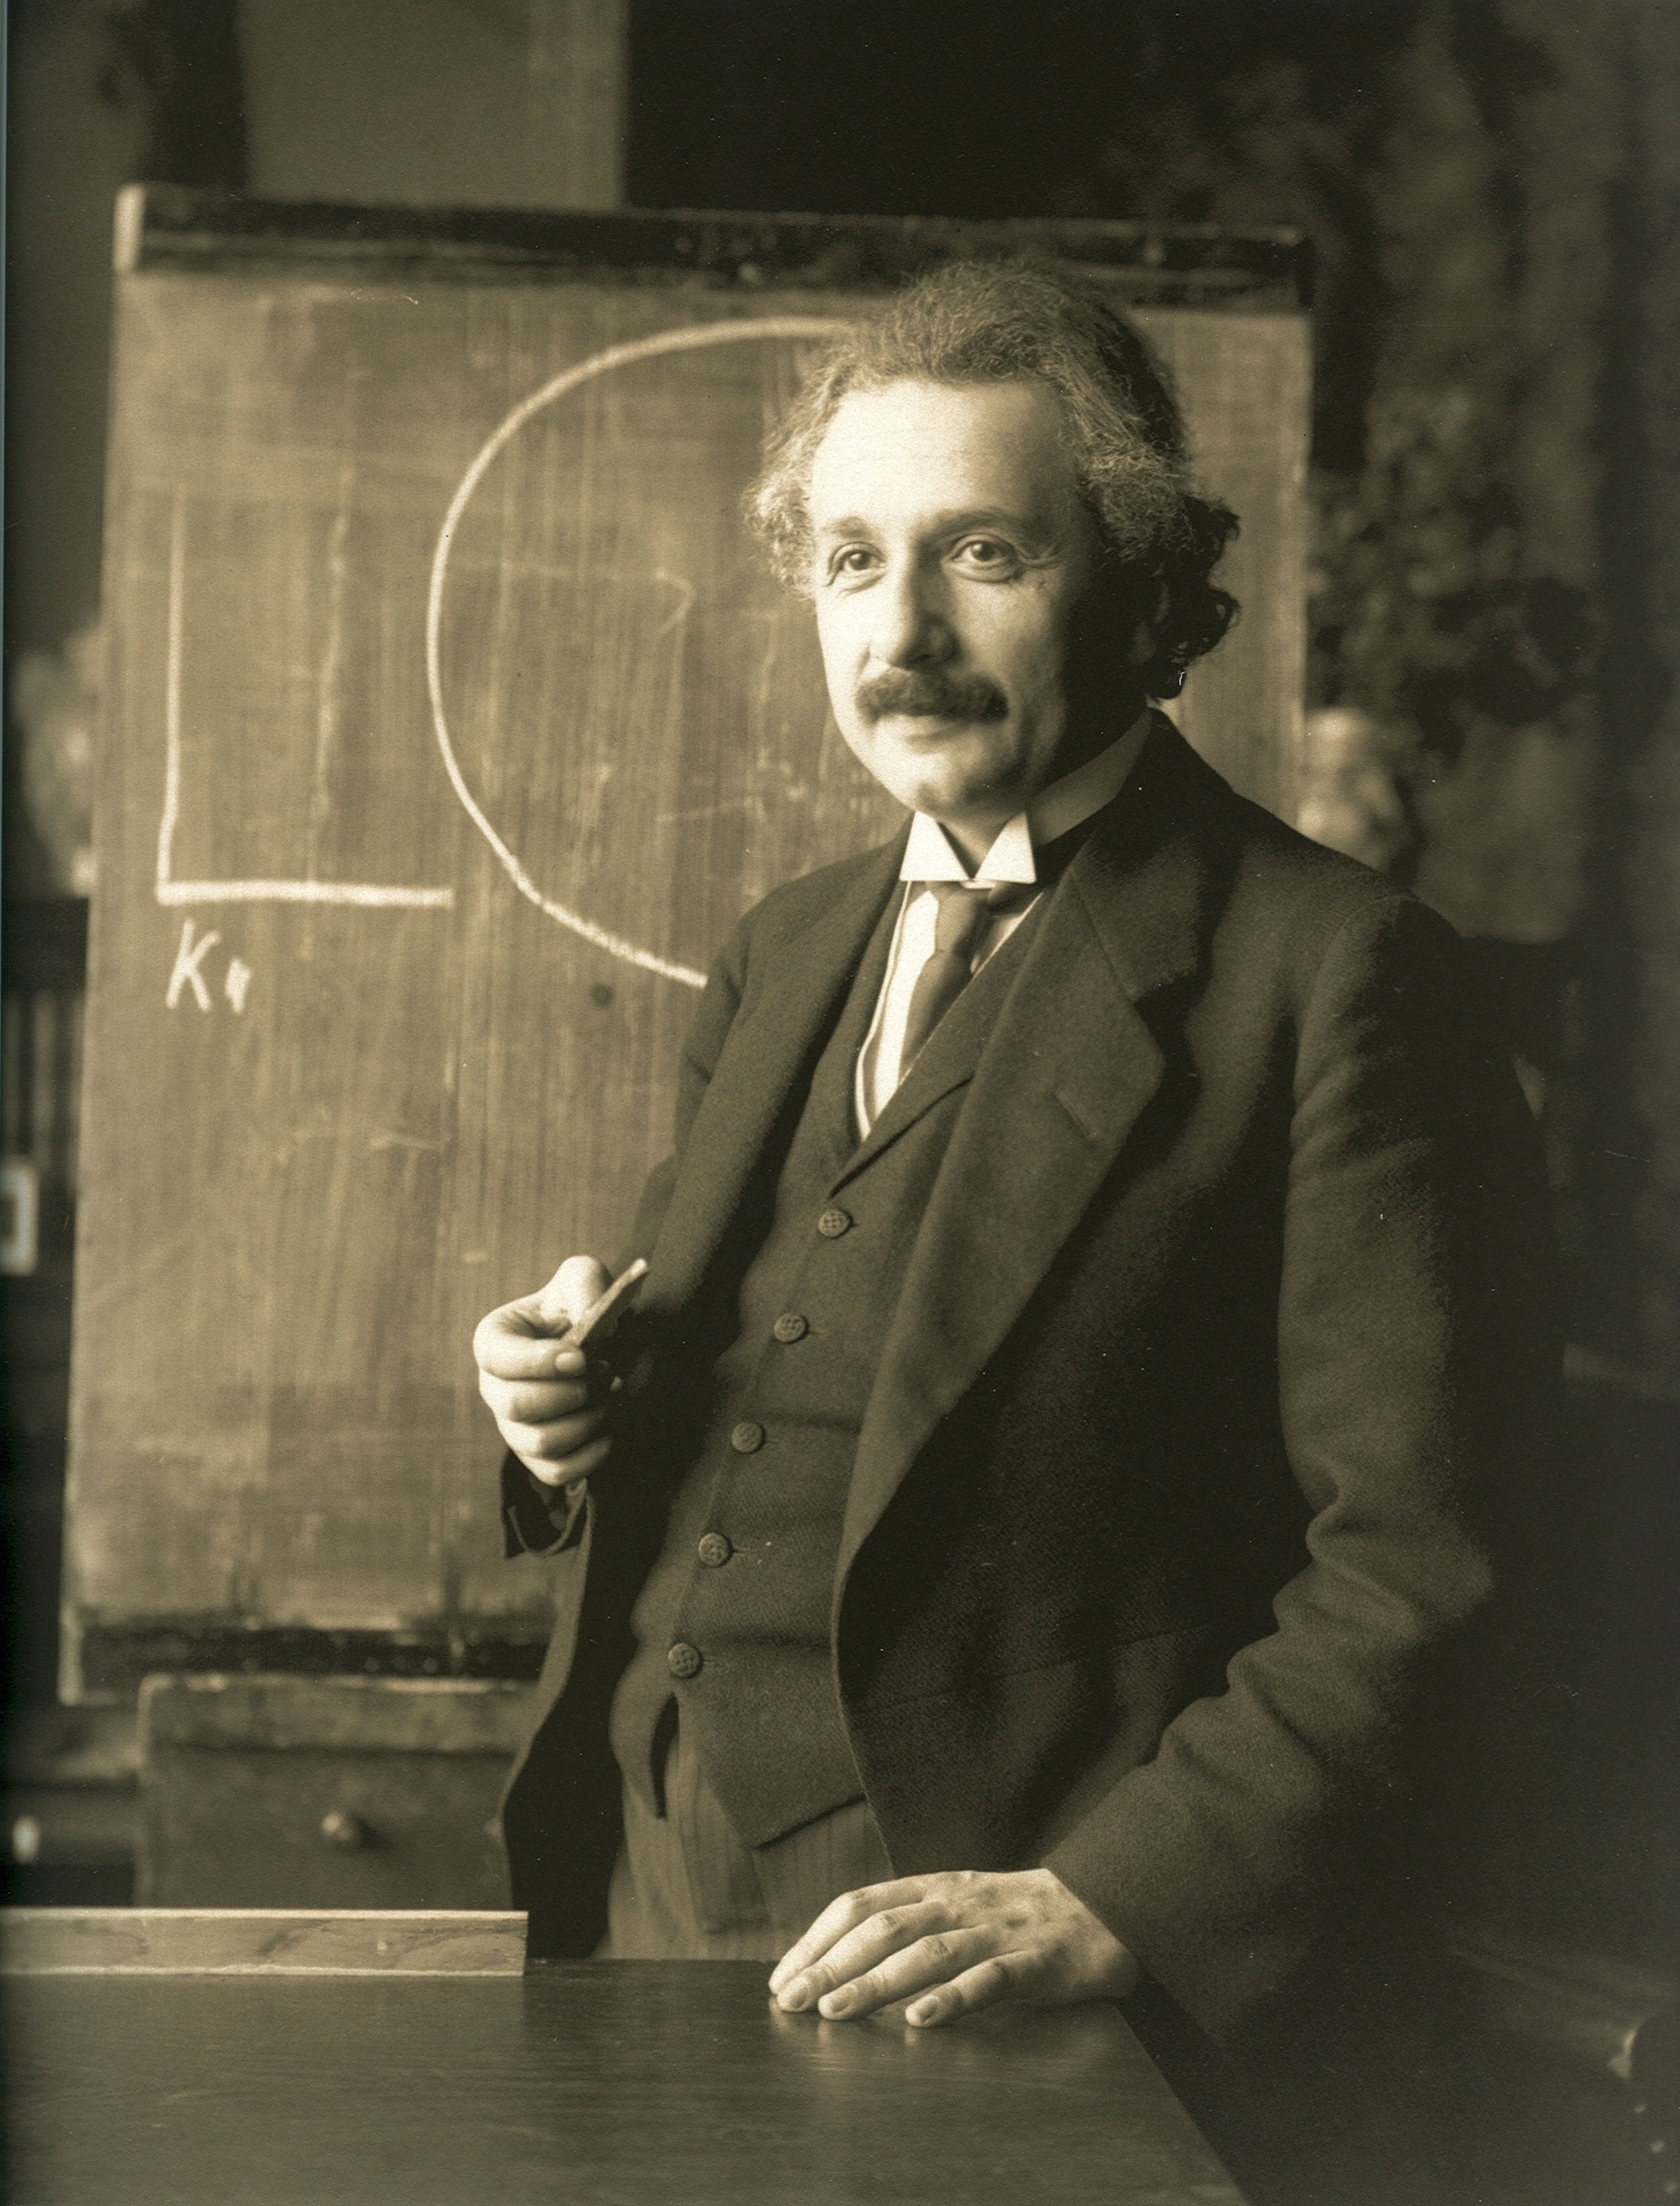 http://upload.wikimedia.org/wikipedia/commons/6/66/Einstein_1921_by_F_Schmutzer.jpg